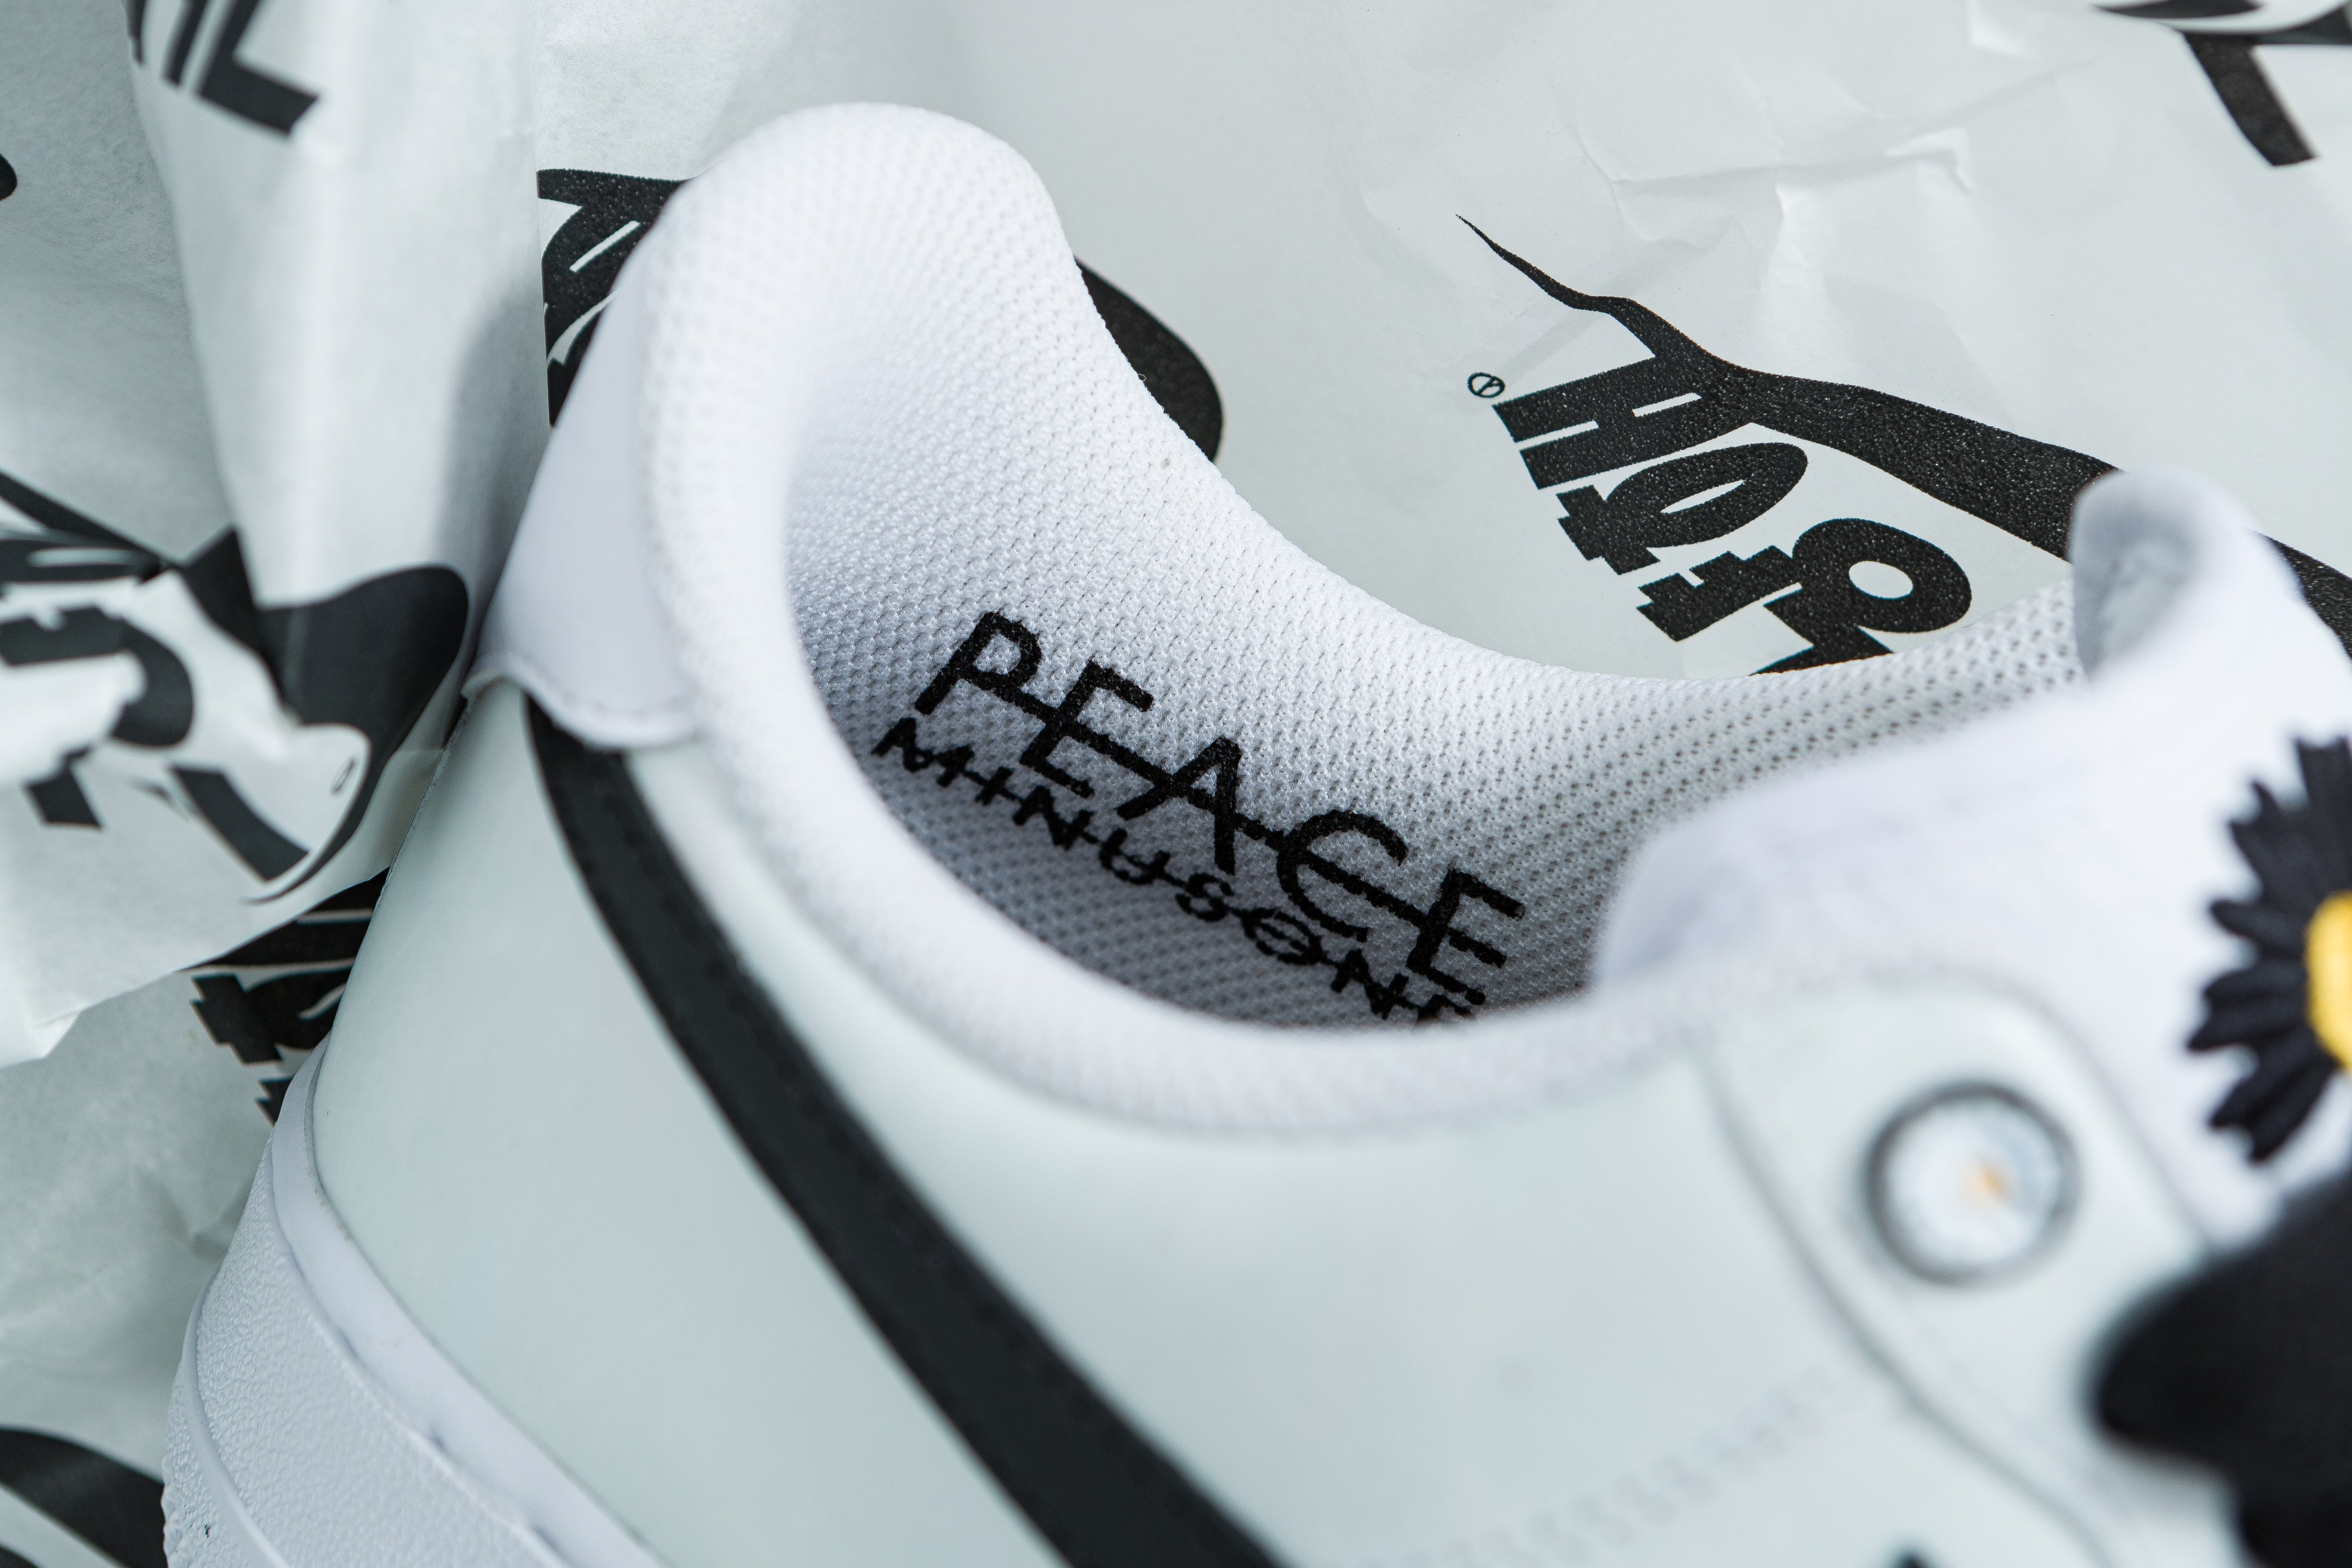 Up There Launches - Nike X Peaceminusone G-Dragon Air Force 1 AF1 'Paranoise'